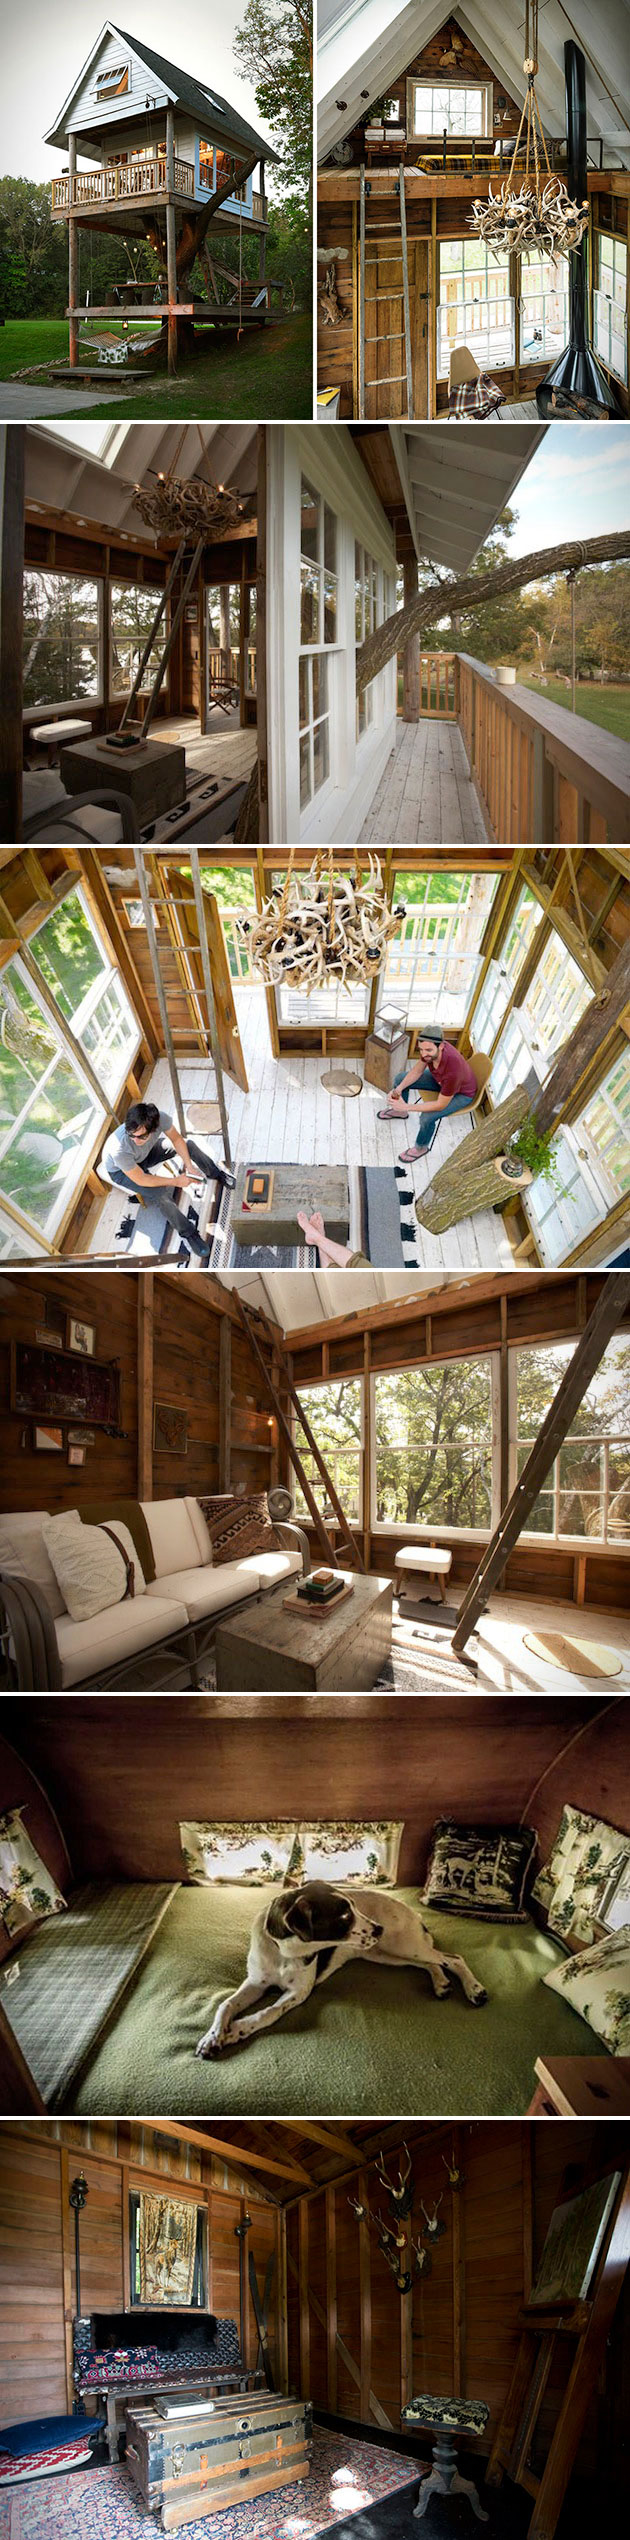 Camp Wandawega Adult Treehouse